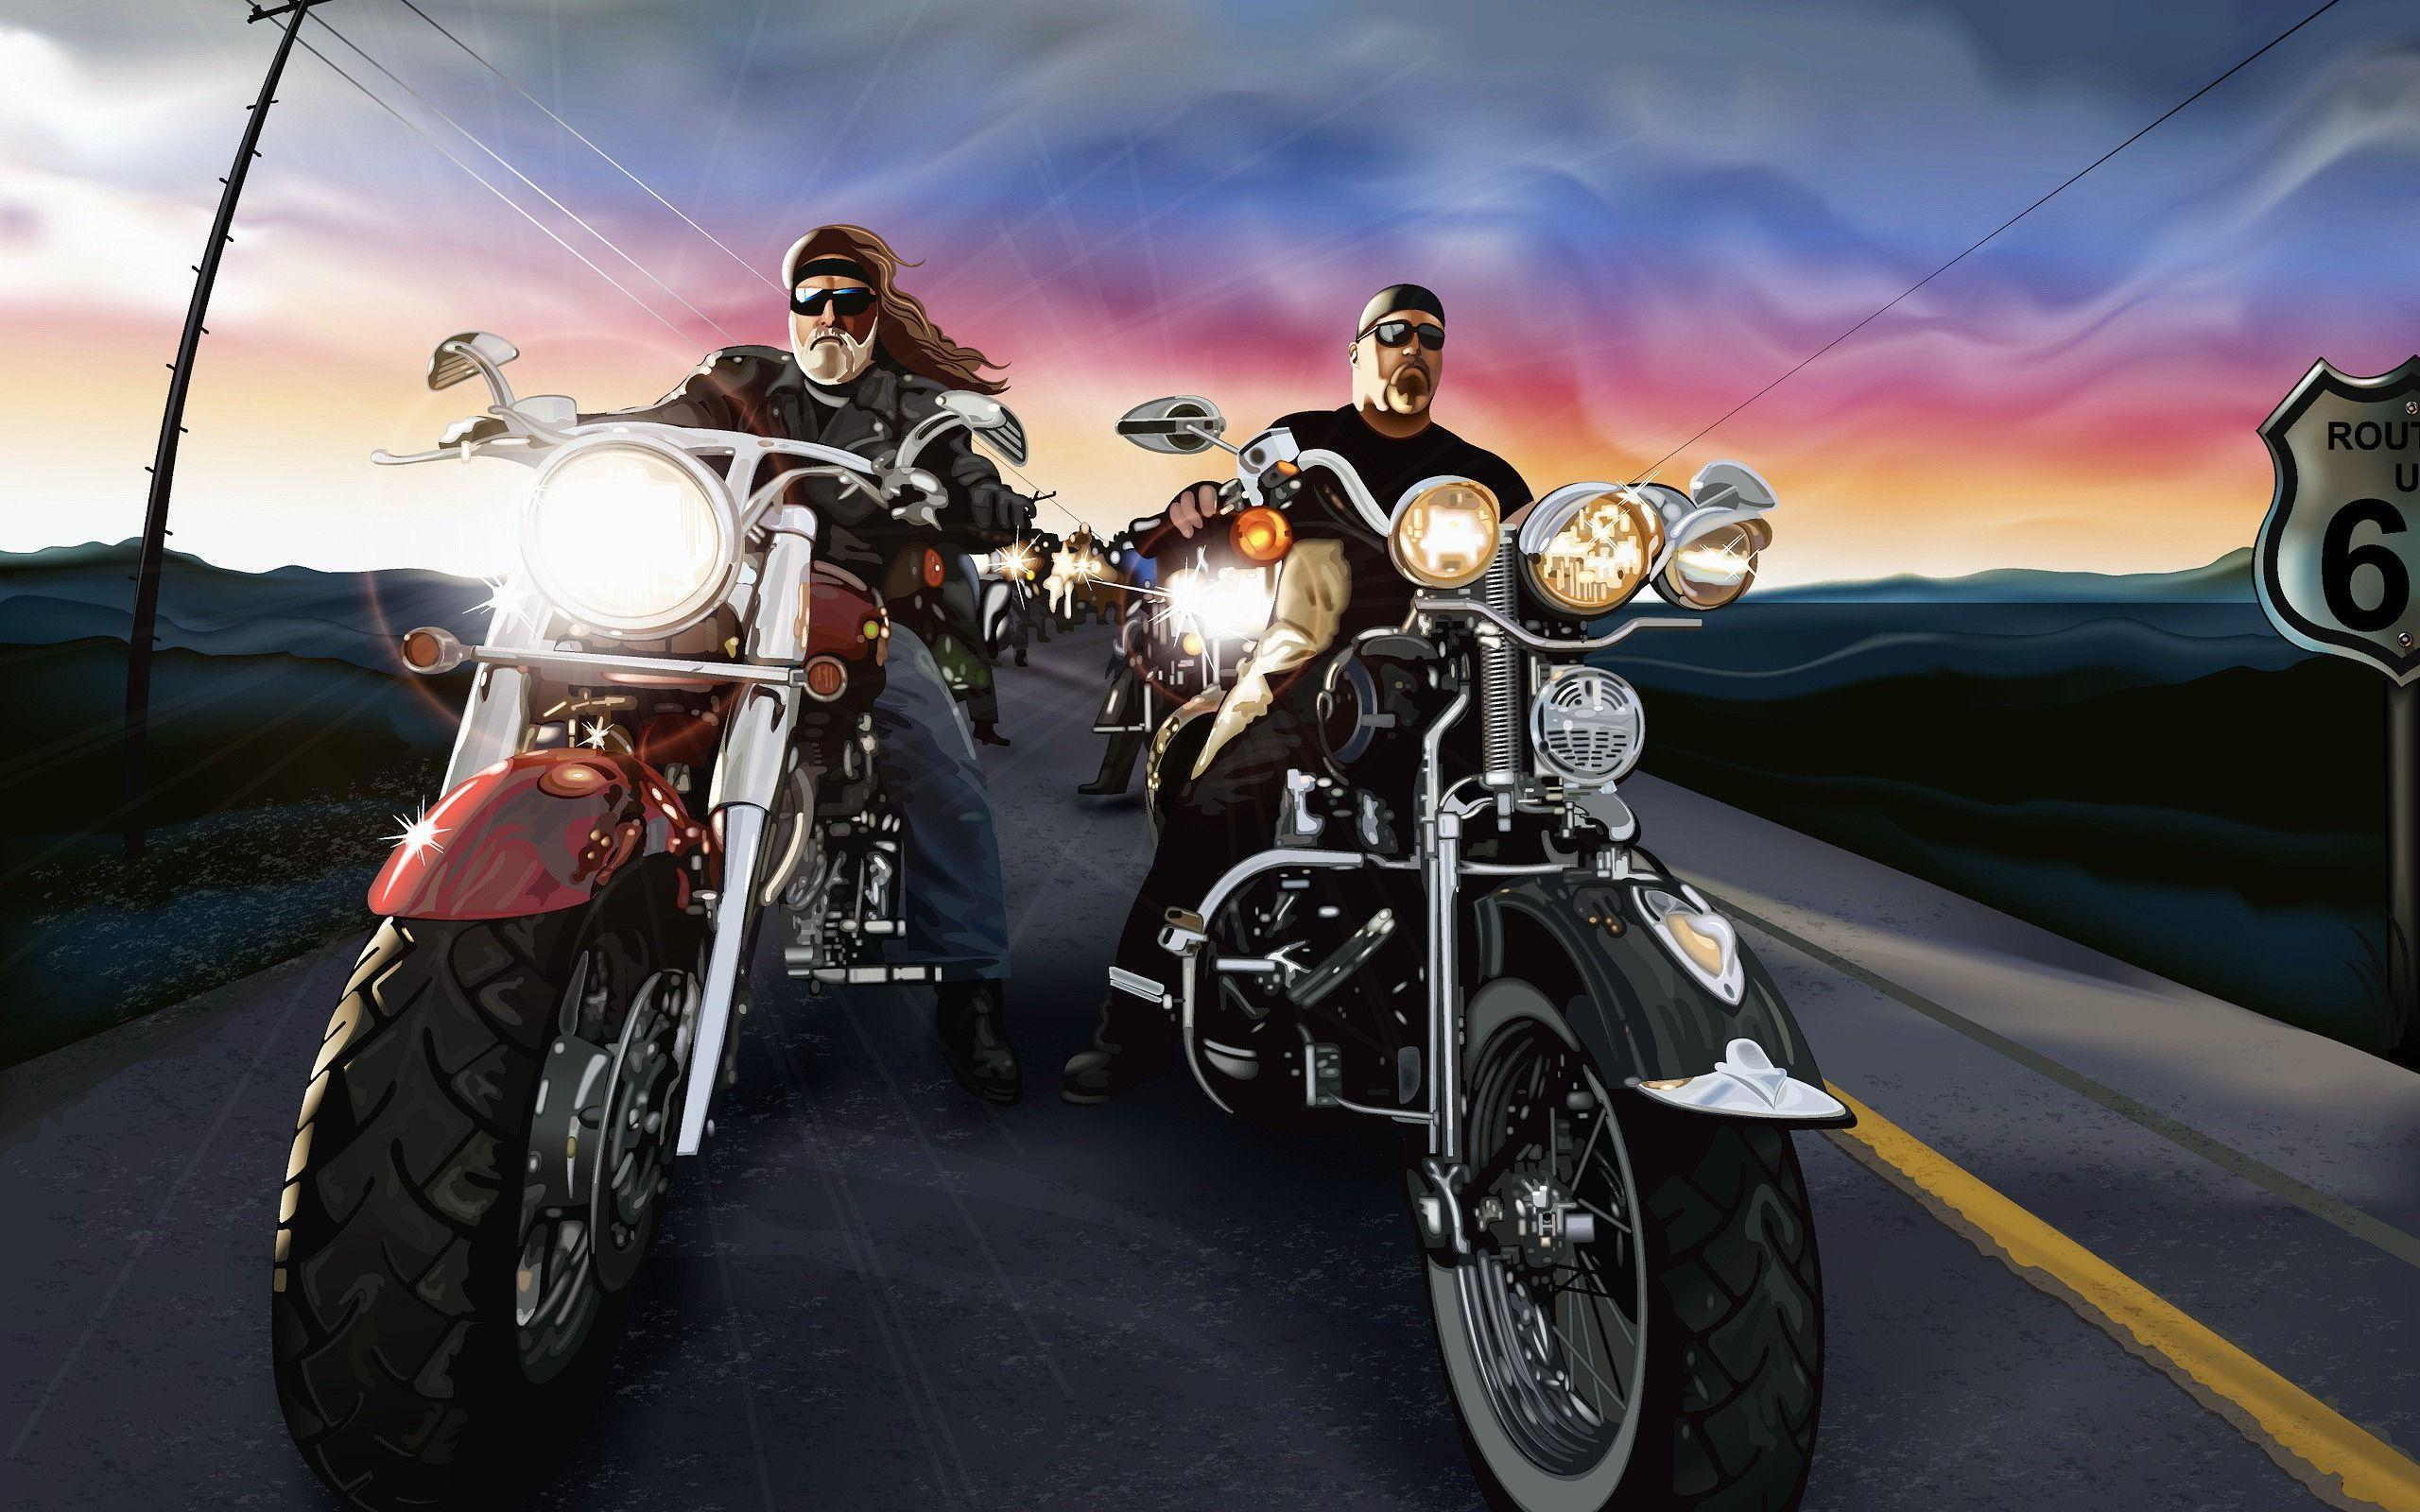 Harley Davidson Wallpapers High Quality